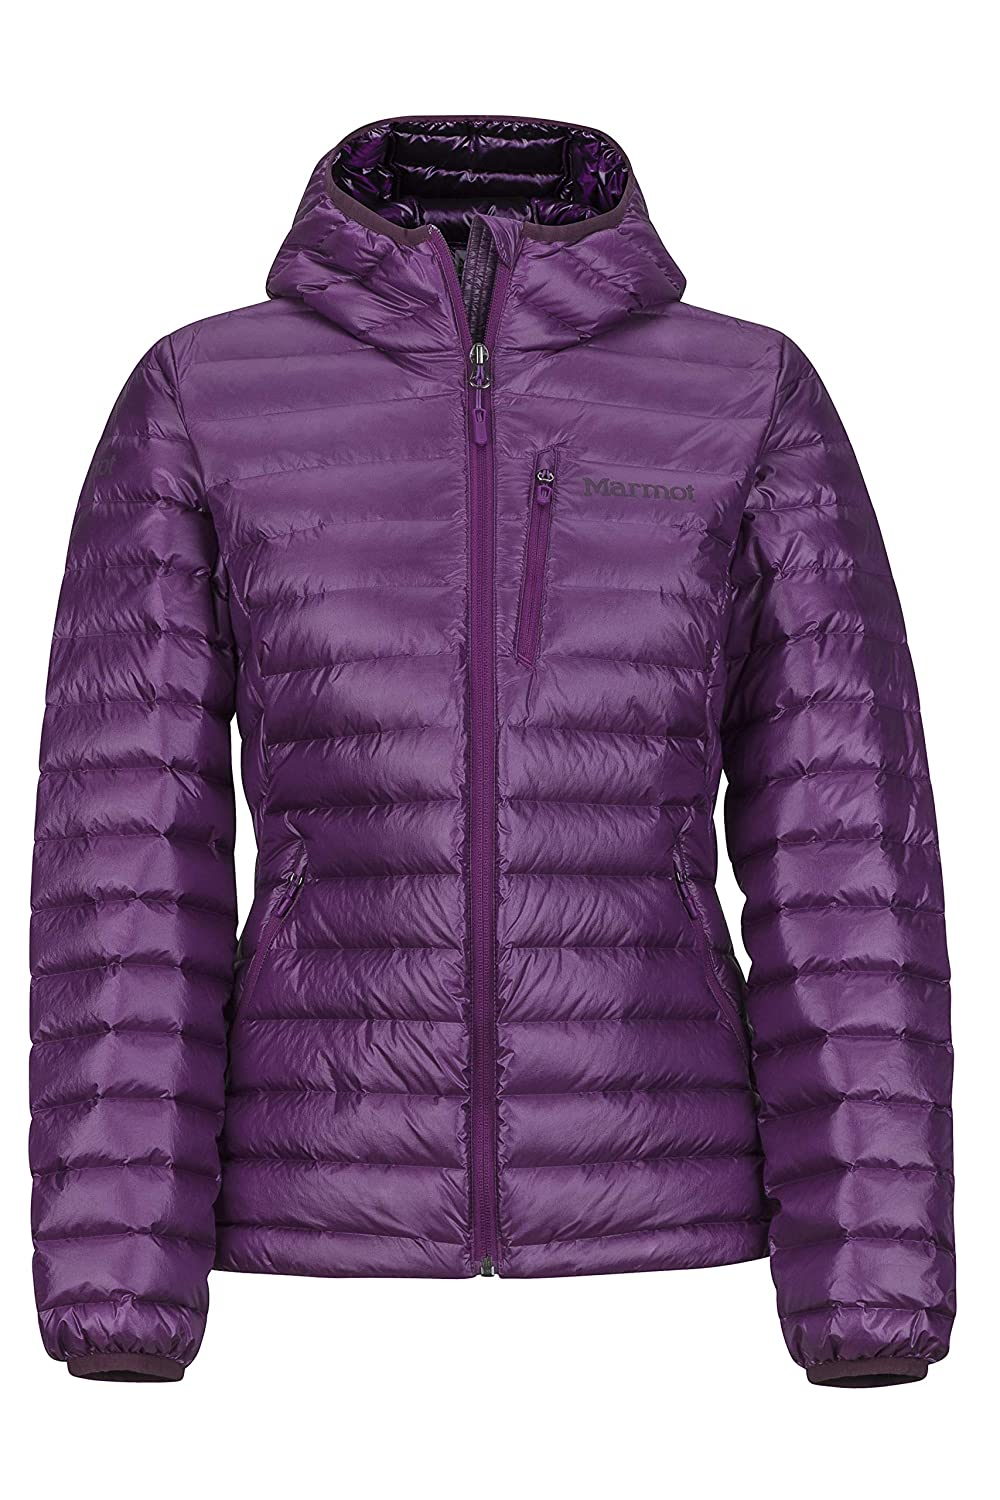 Grape Marmot Women's Quasar Nova Hoody